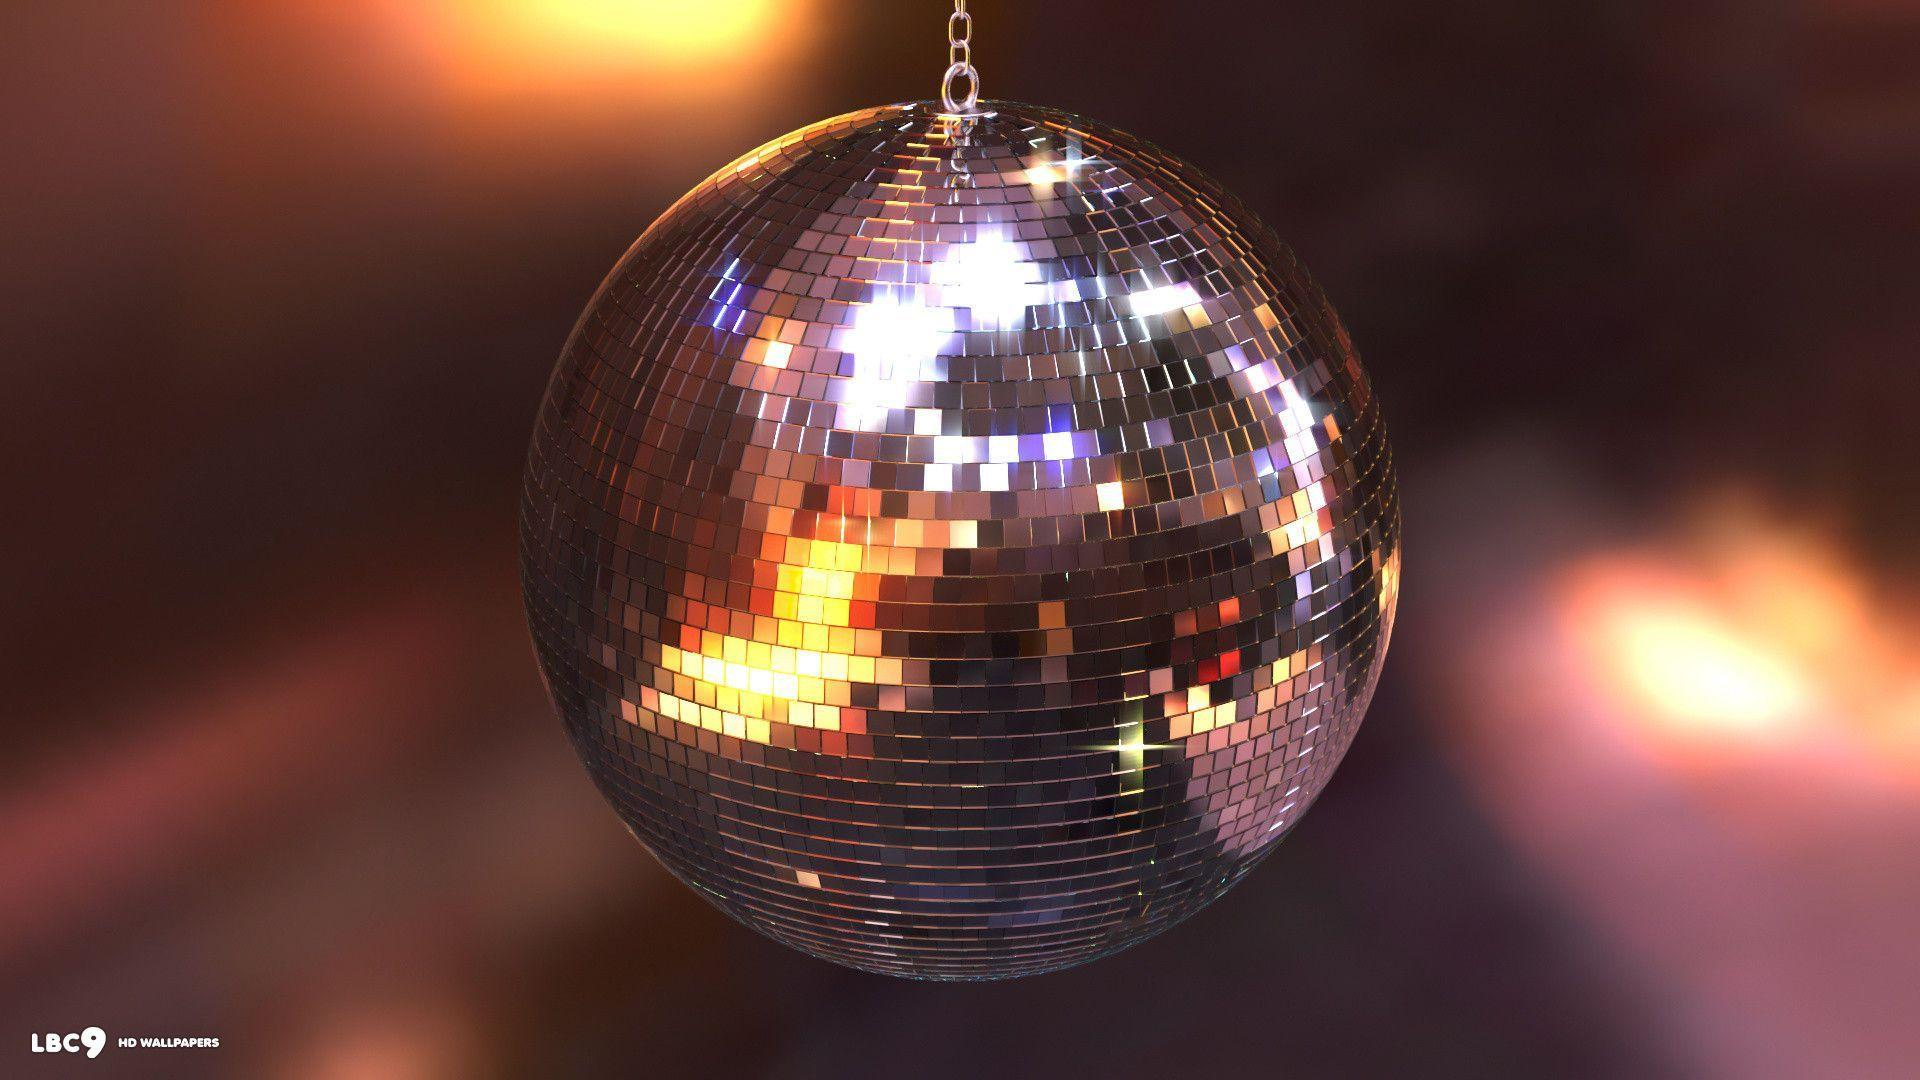 Disco Ball Wallpapers Wallpaper Cave HD Wallpapers Download Free Images Wallpaper [1000image.com]